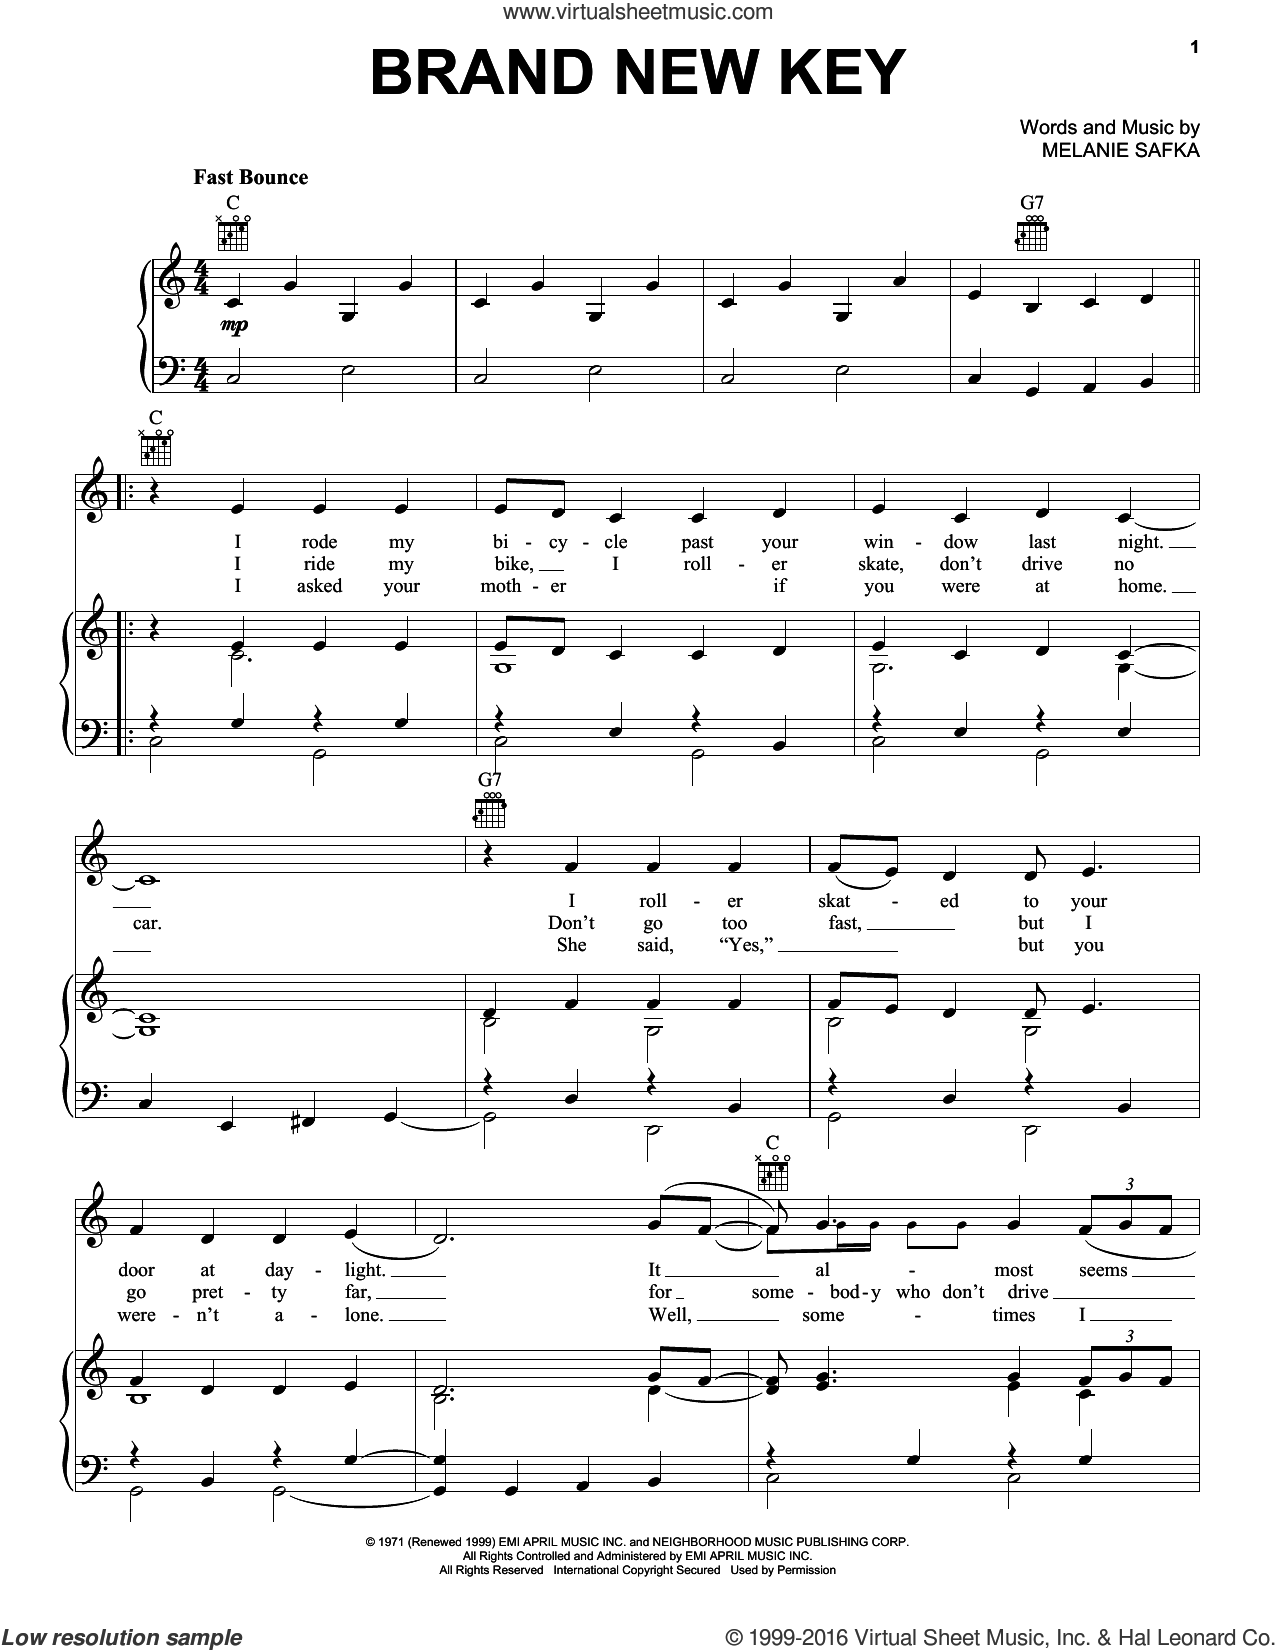 Brand New Key sheet music for voice, piano or guitar by Melanie Safka